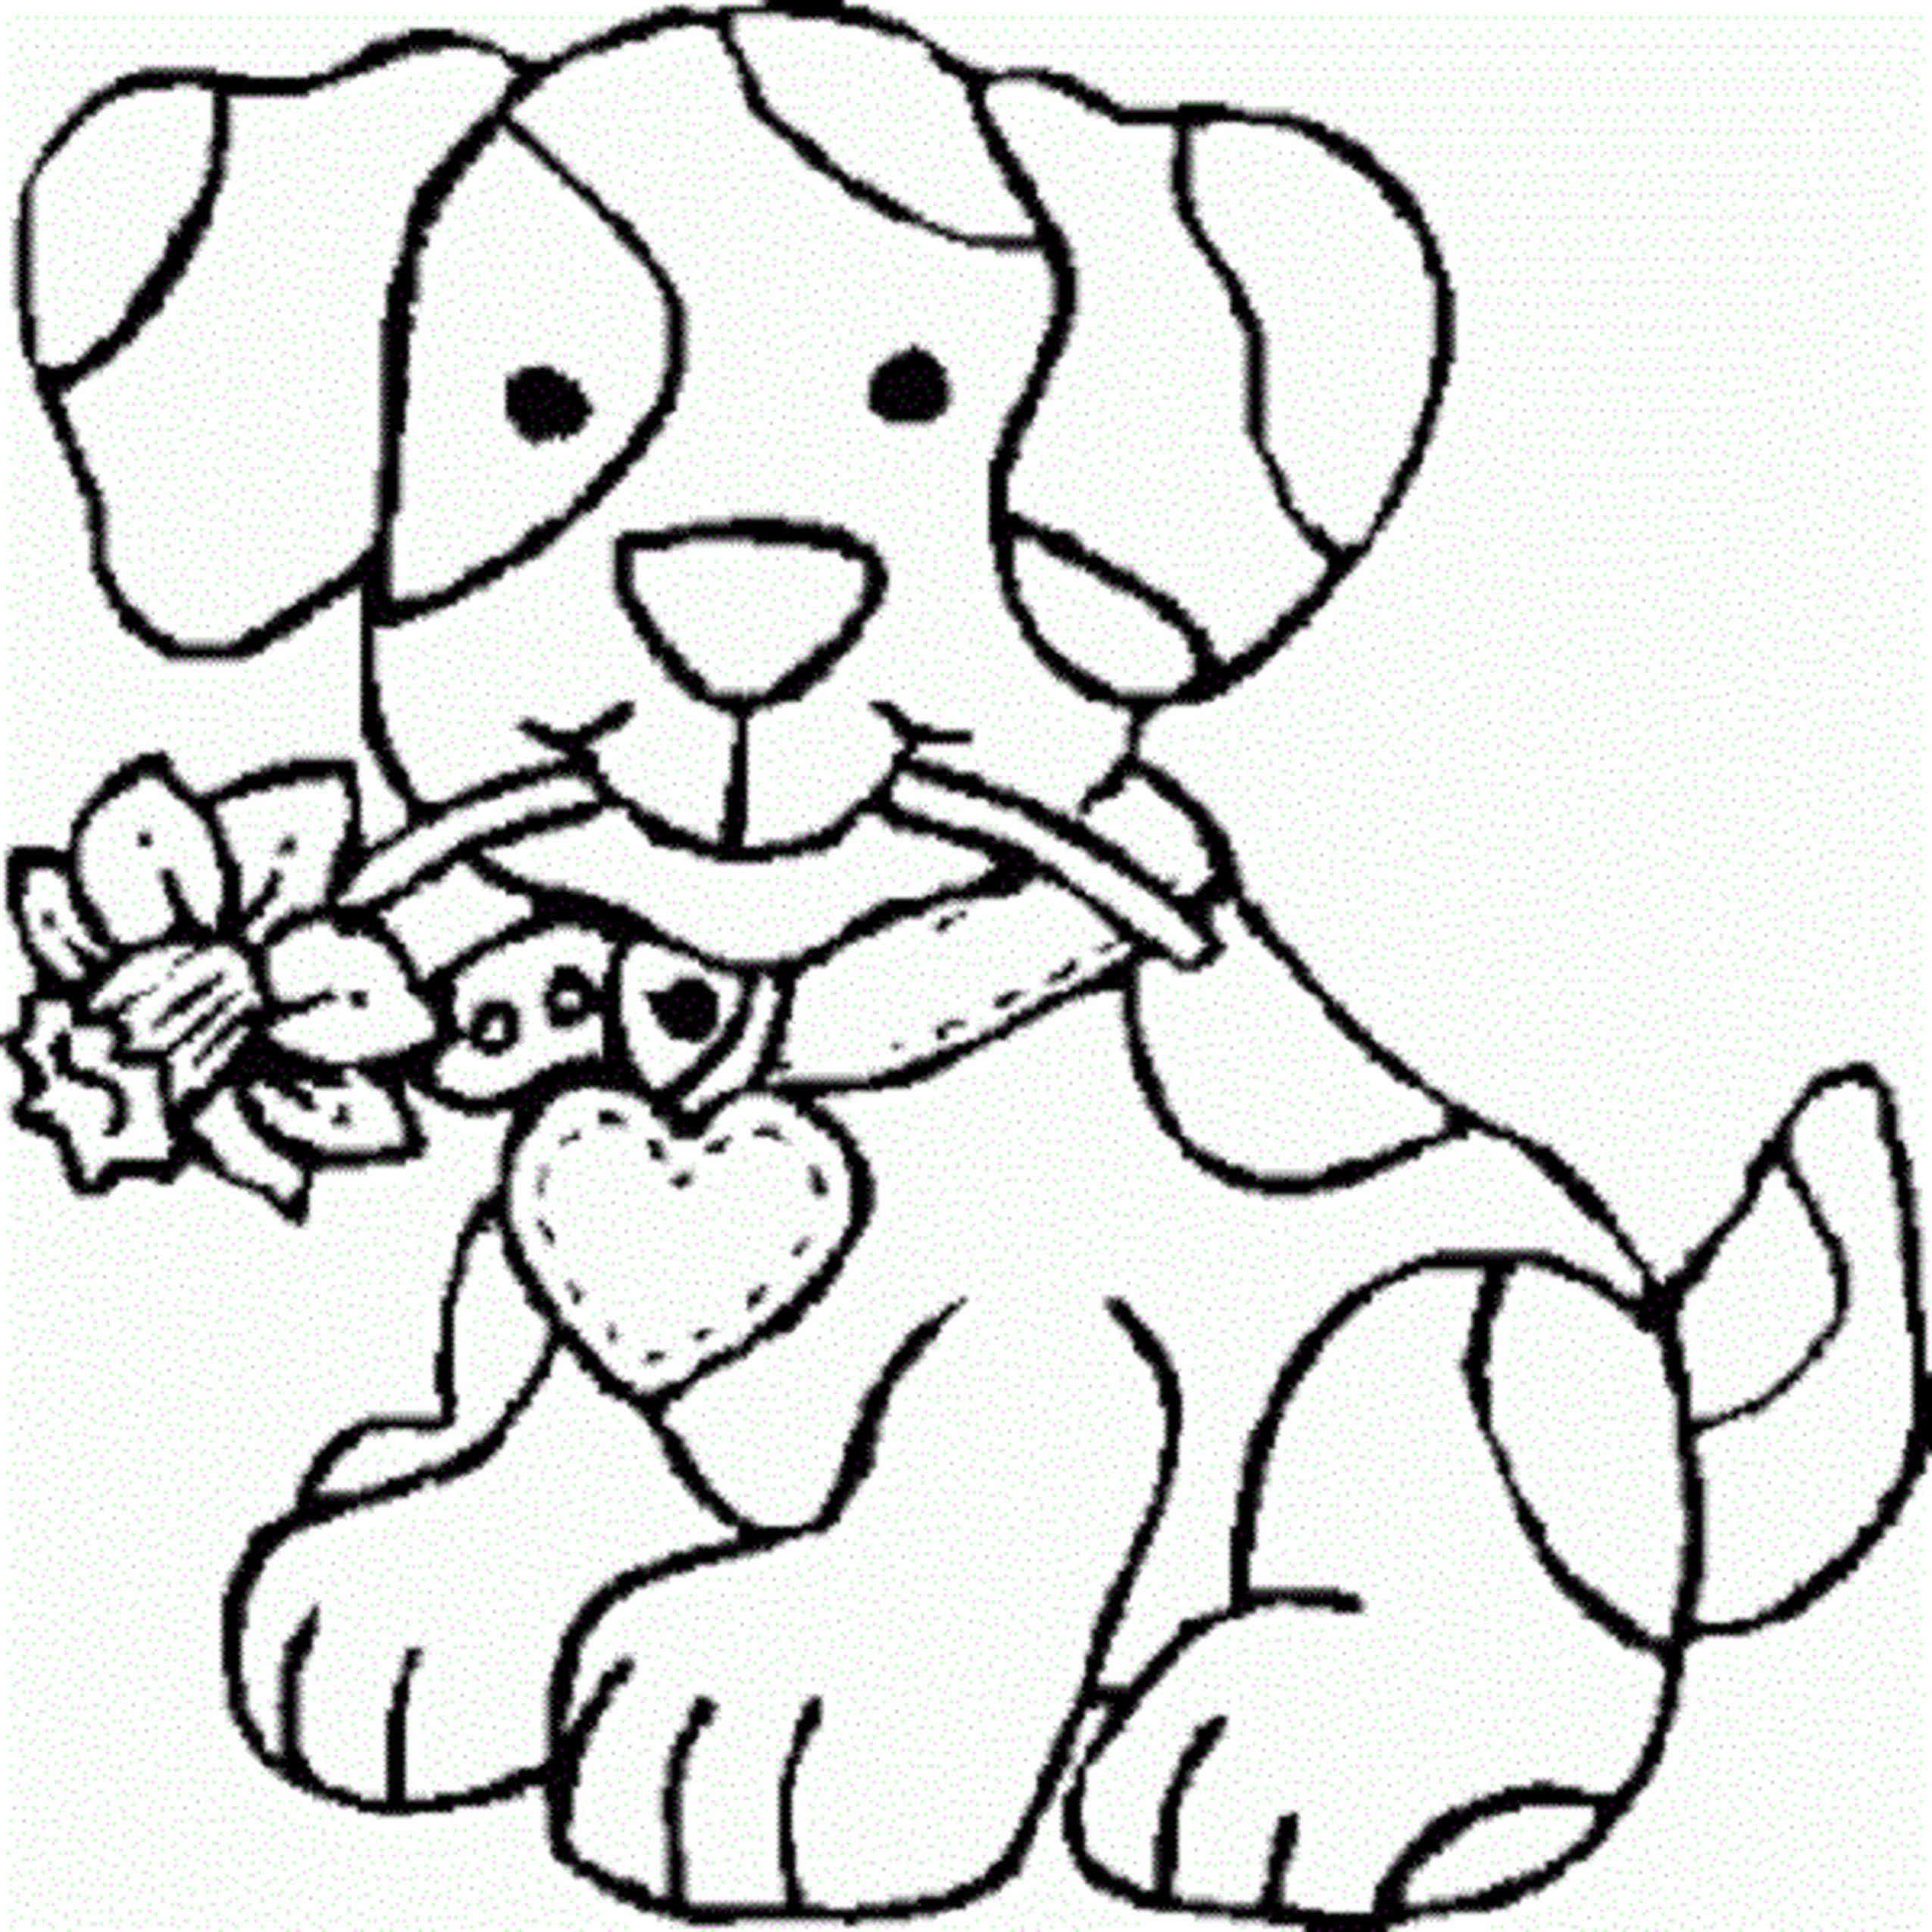 2550x2550 New Free Printable Coloring Pages Artsybarksy Girls